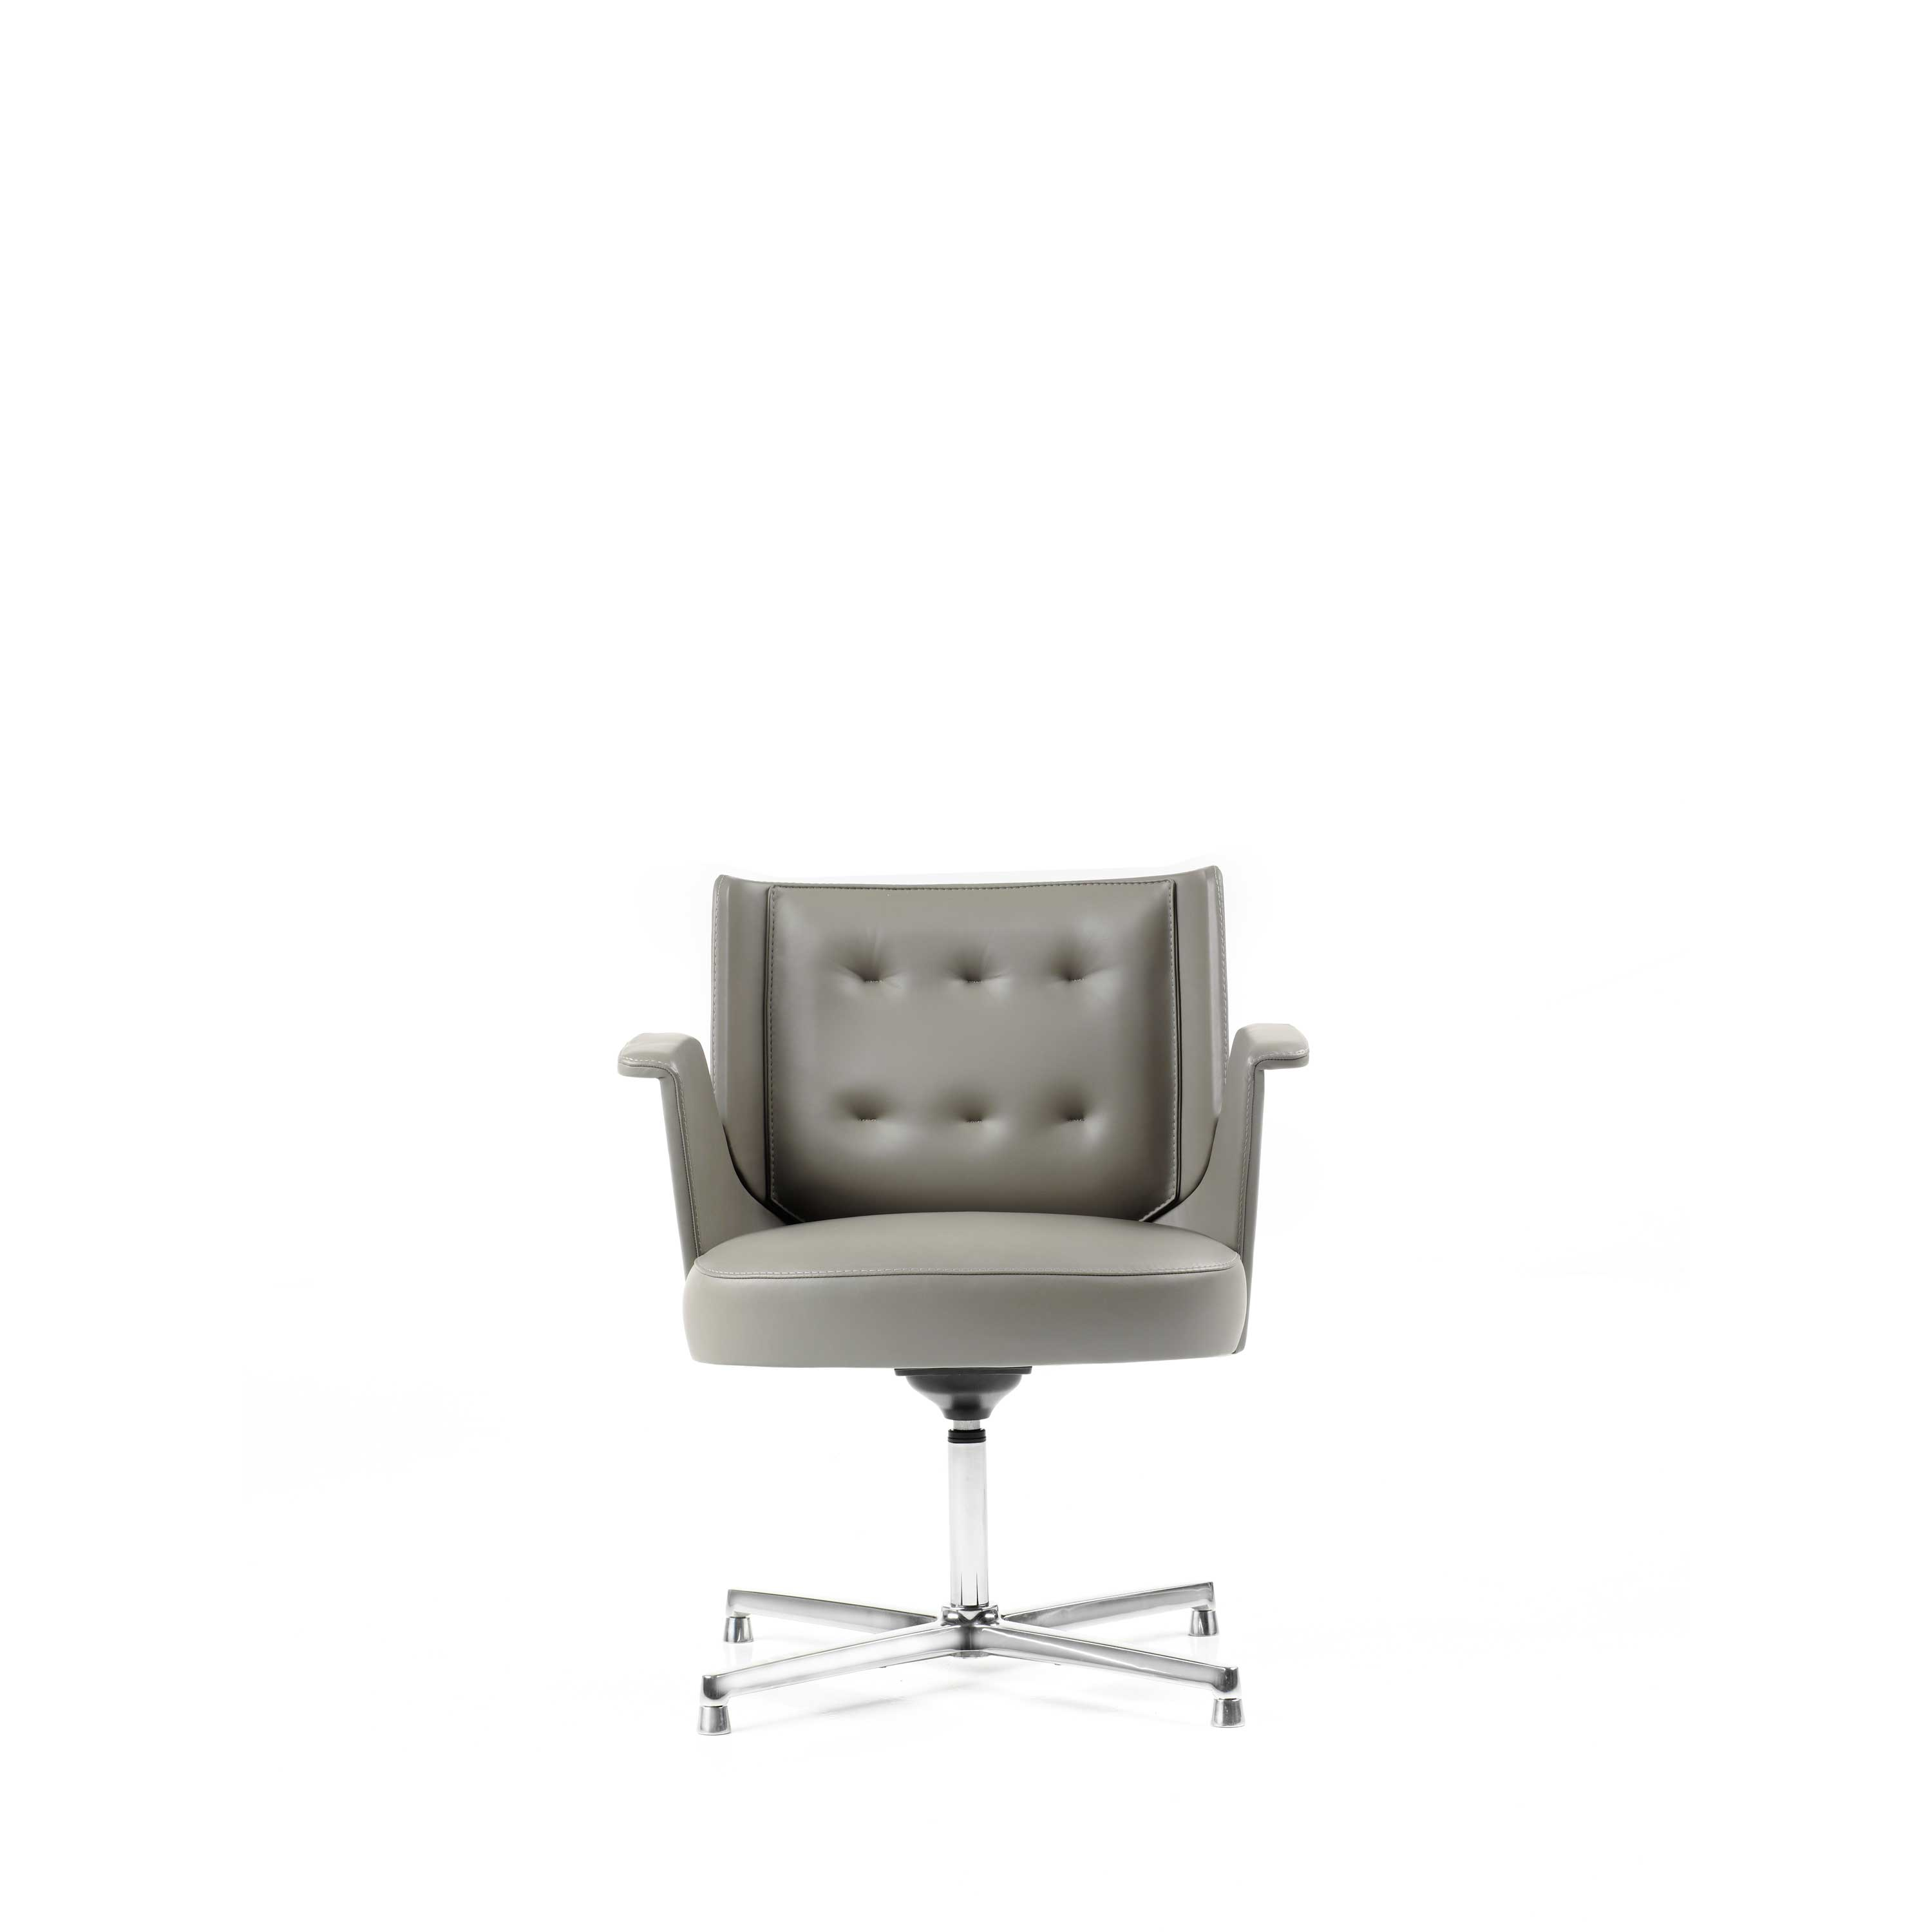 10S_Estel_Comfort&Relax_Office-Chair_Embrasse